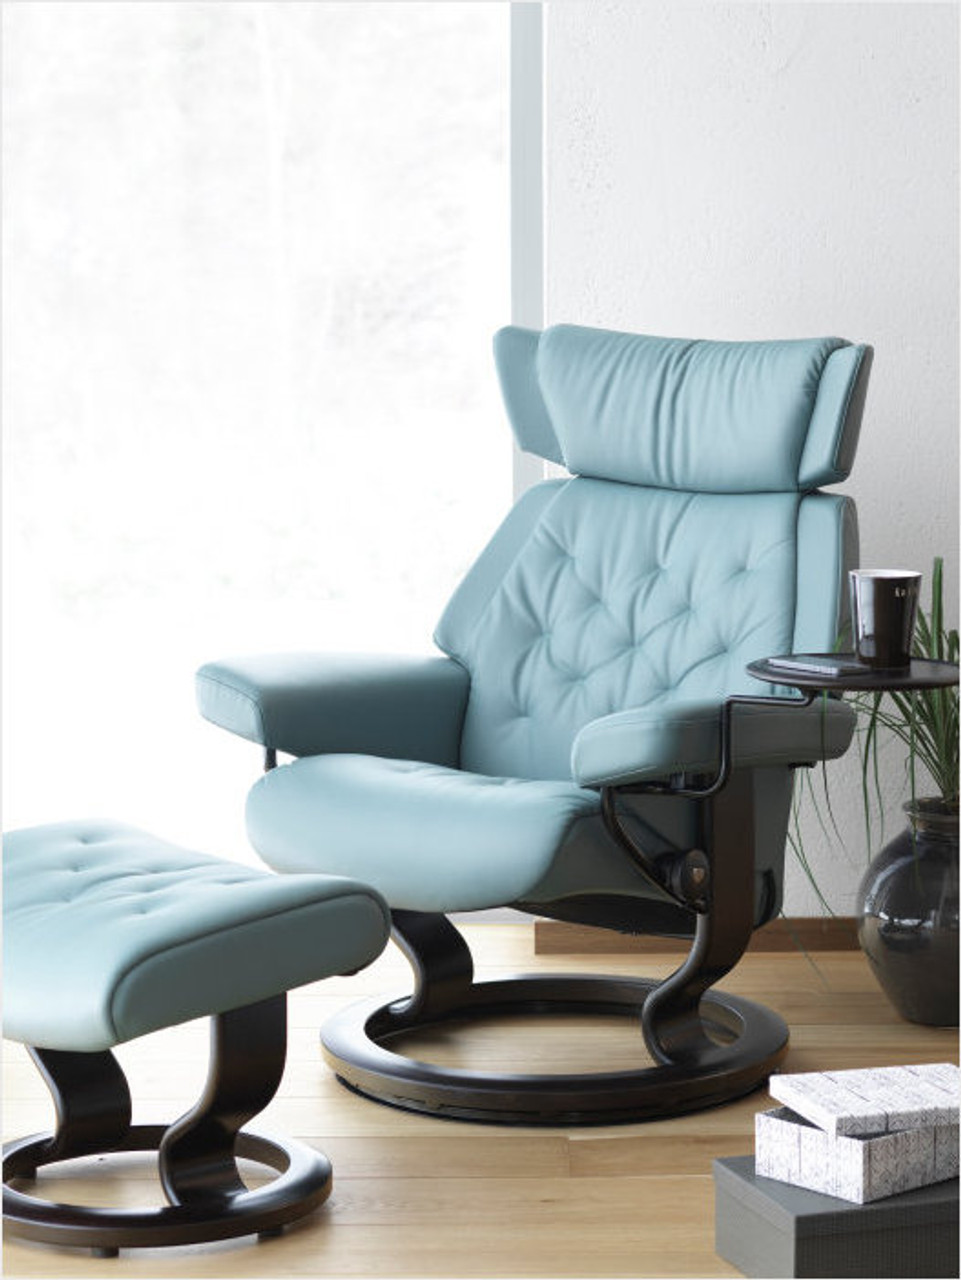 Fabulous Small Stressless Skyline Recliner Classic Base With Ottoman By Ekornes Beatyapartments Chair Design Images Beatyapartmentscom